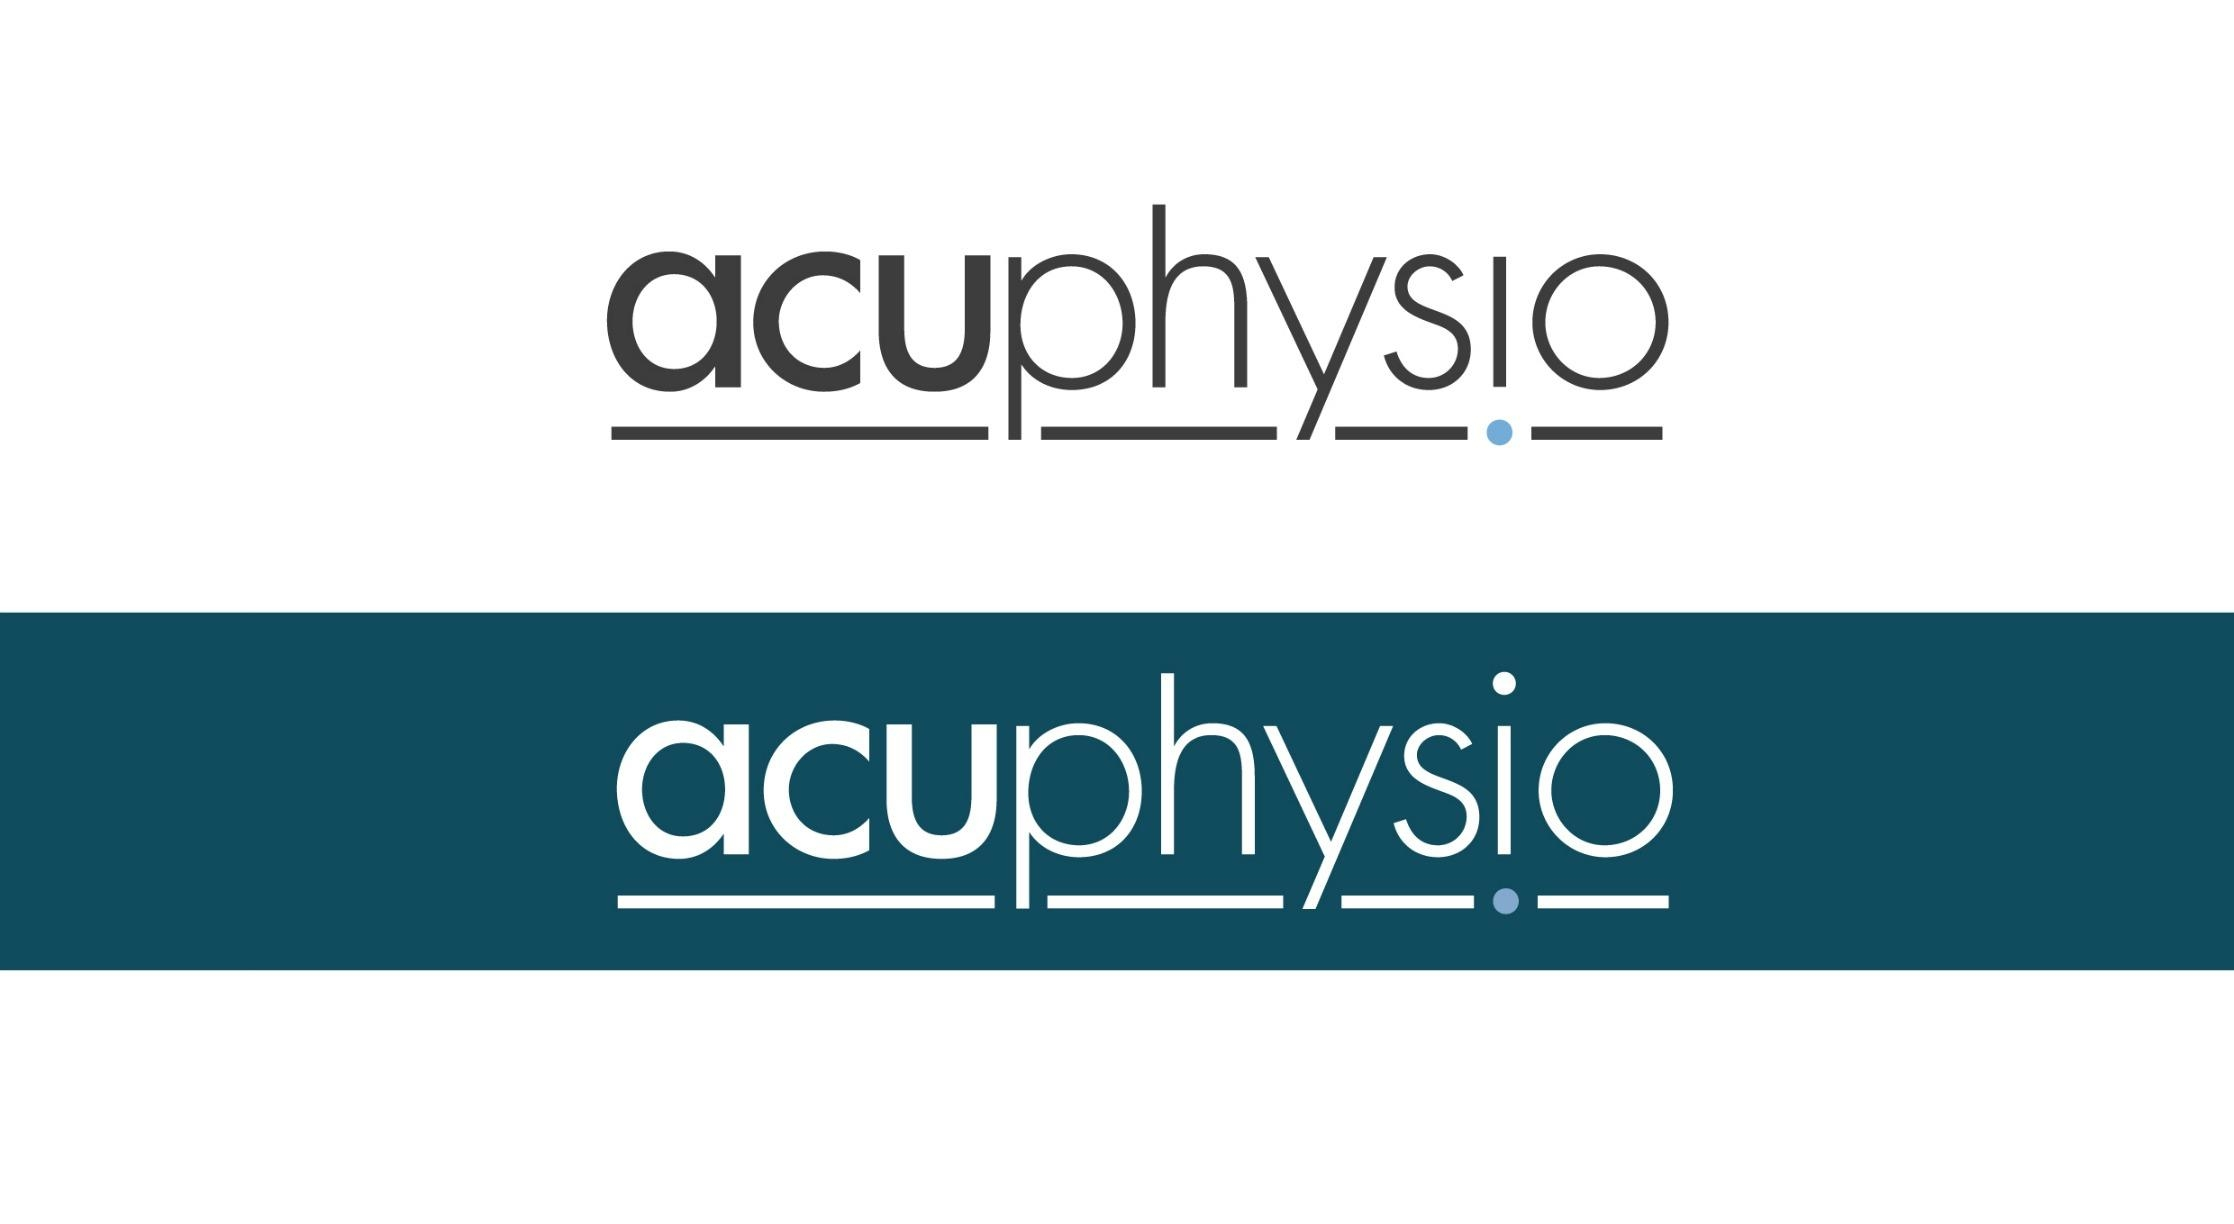 acuphysio acupuncture and physical therapy image 6